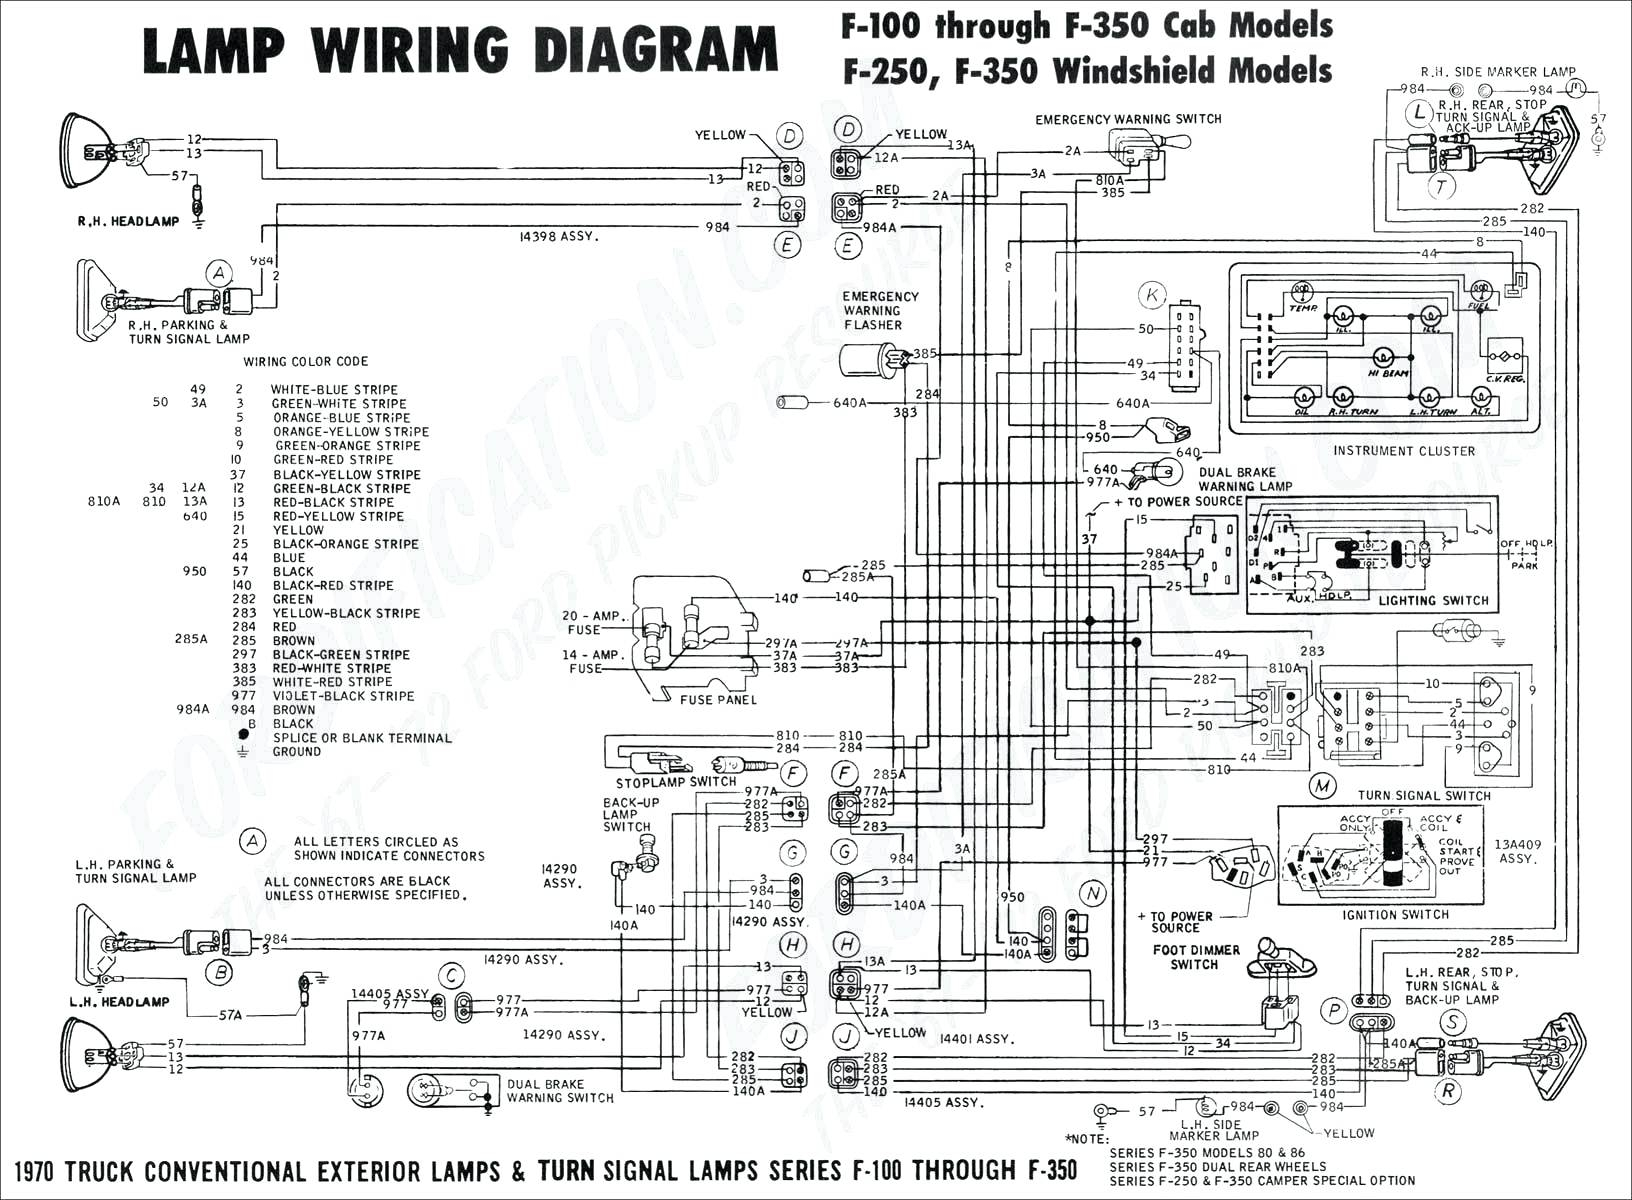 DIAGRAM] 1990 Peterbilt Wiring Diagram FULL Version HD Quality Wiring  Diagram - SHIPSDIAGRAMS.POLISPORTCAPOLIVERI.IT | 2004 379 Peterbilt Wiring Diagram |  | Diagram Database